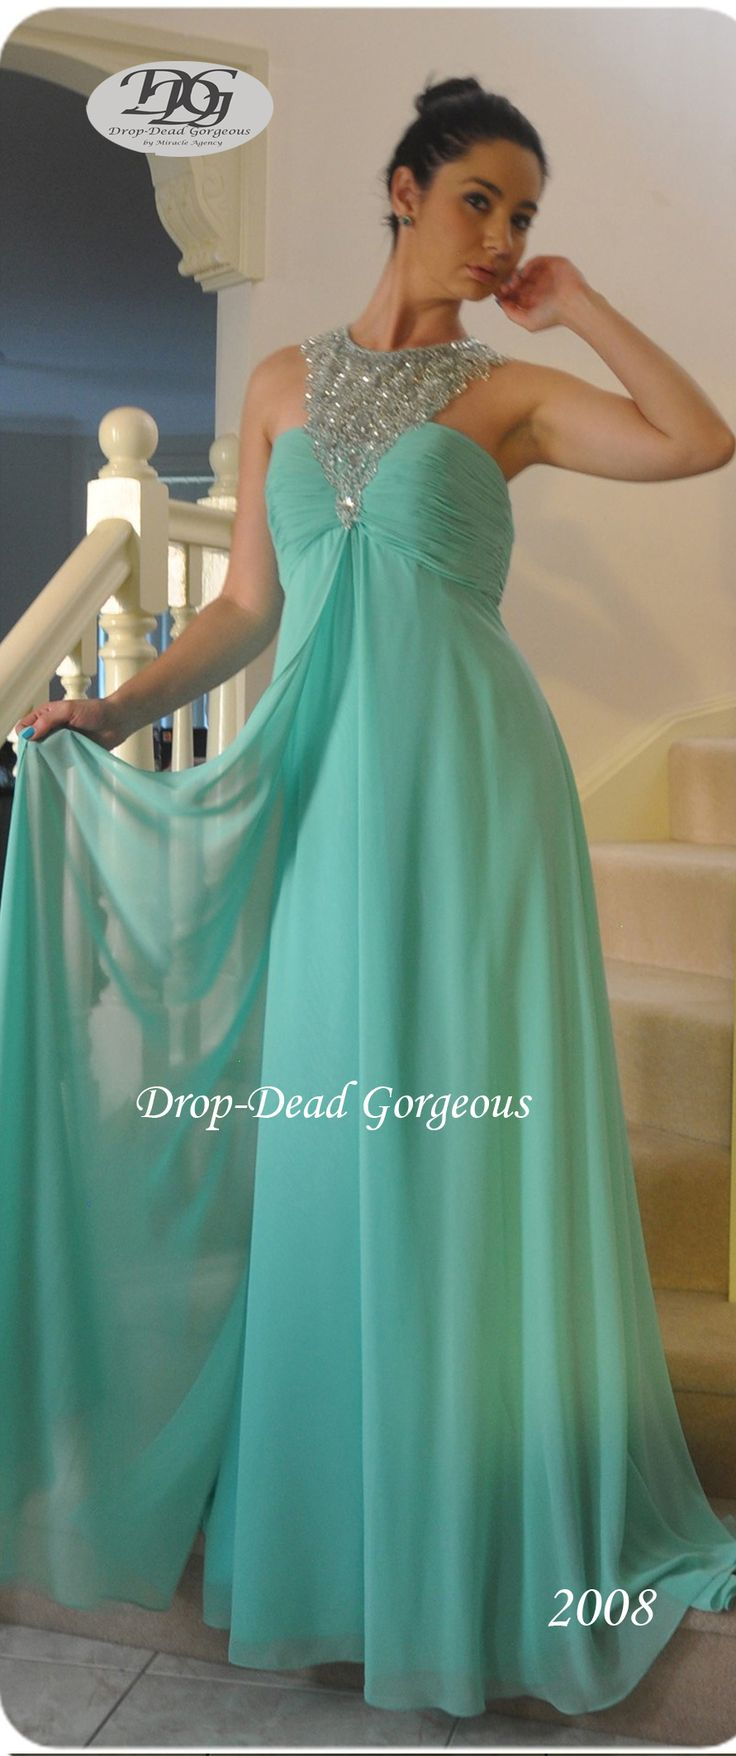 Forever Popular: School Formal and Bridesmaids Dress:  Georgette gown with a triangle beaded neckline and an open low back. #DDGMA #DropDeadGorgeous #MiracleAgency #Schoolformal #Maids  www.miracleagency.net